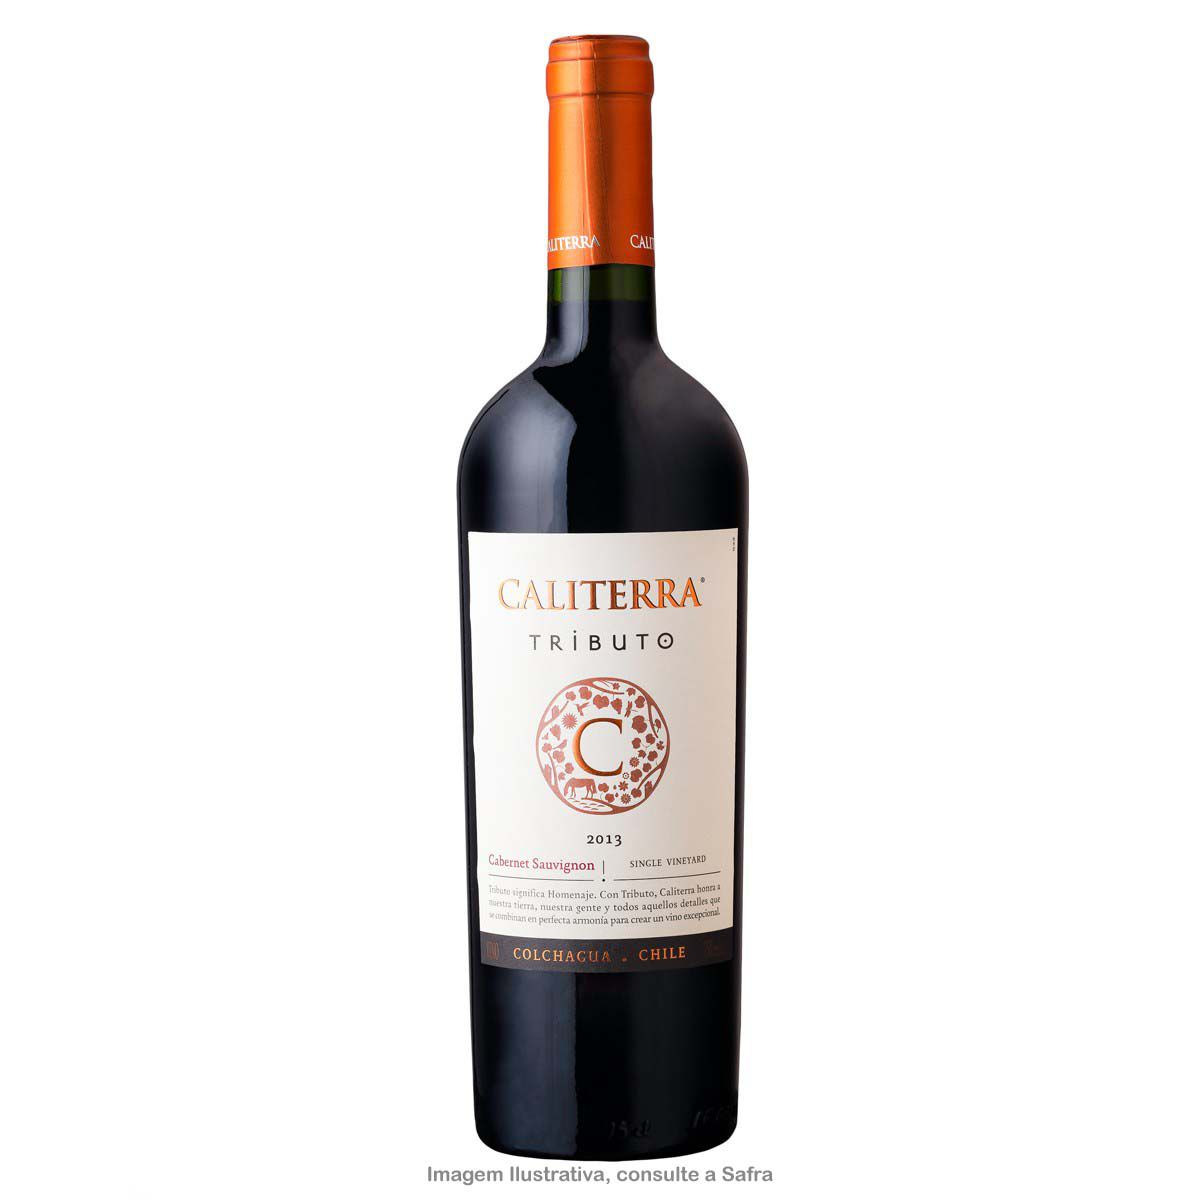 Caliterra Cabernet Sauvignon Tributo Single Vineyard